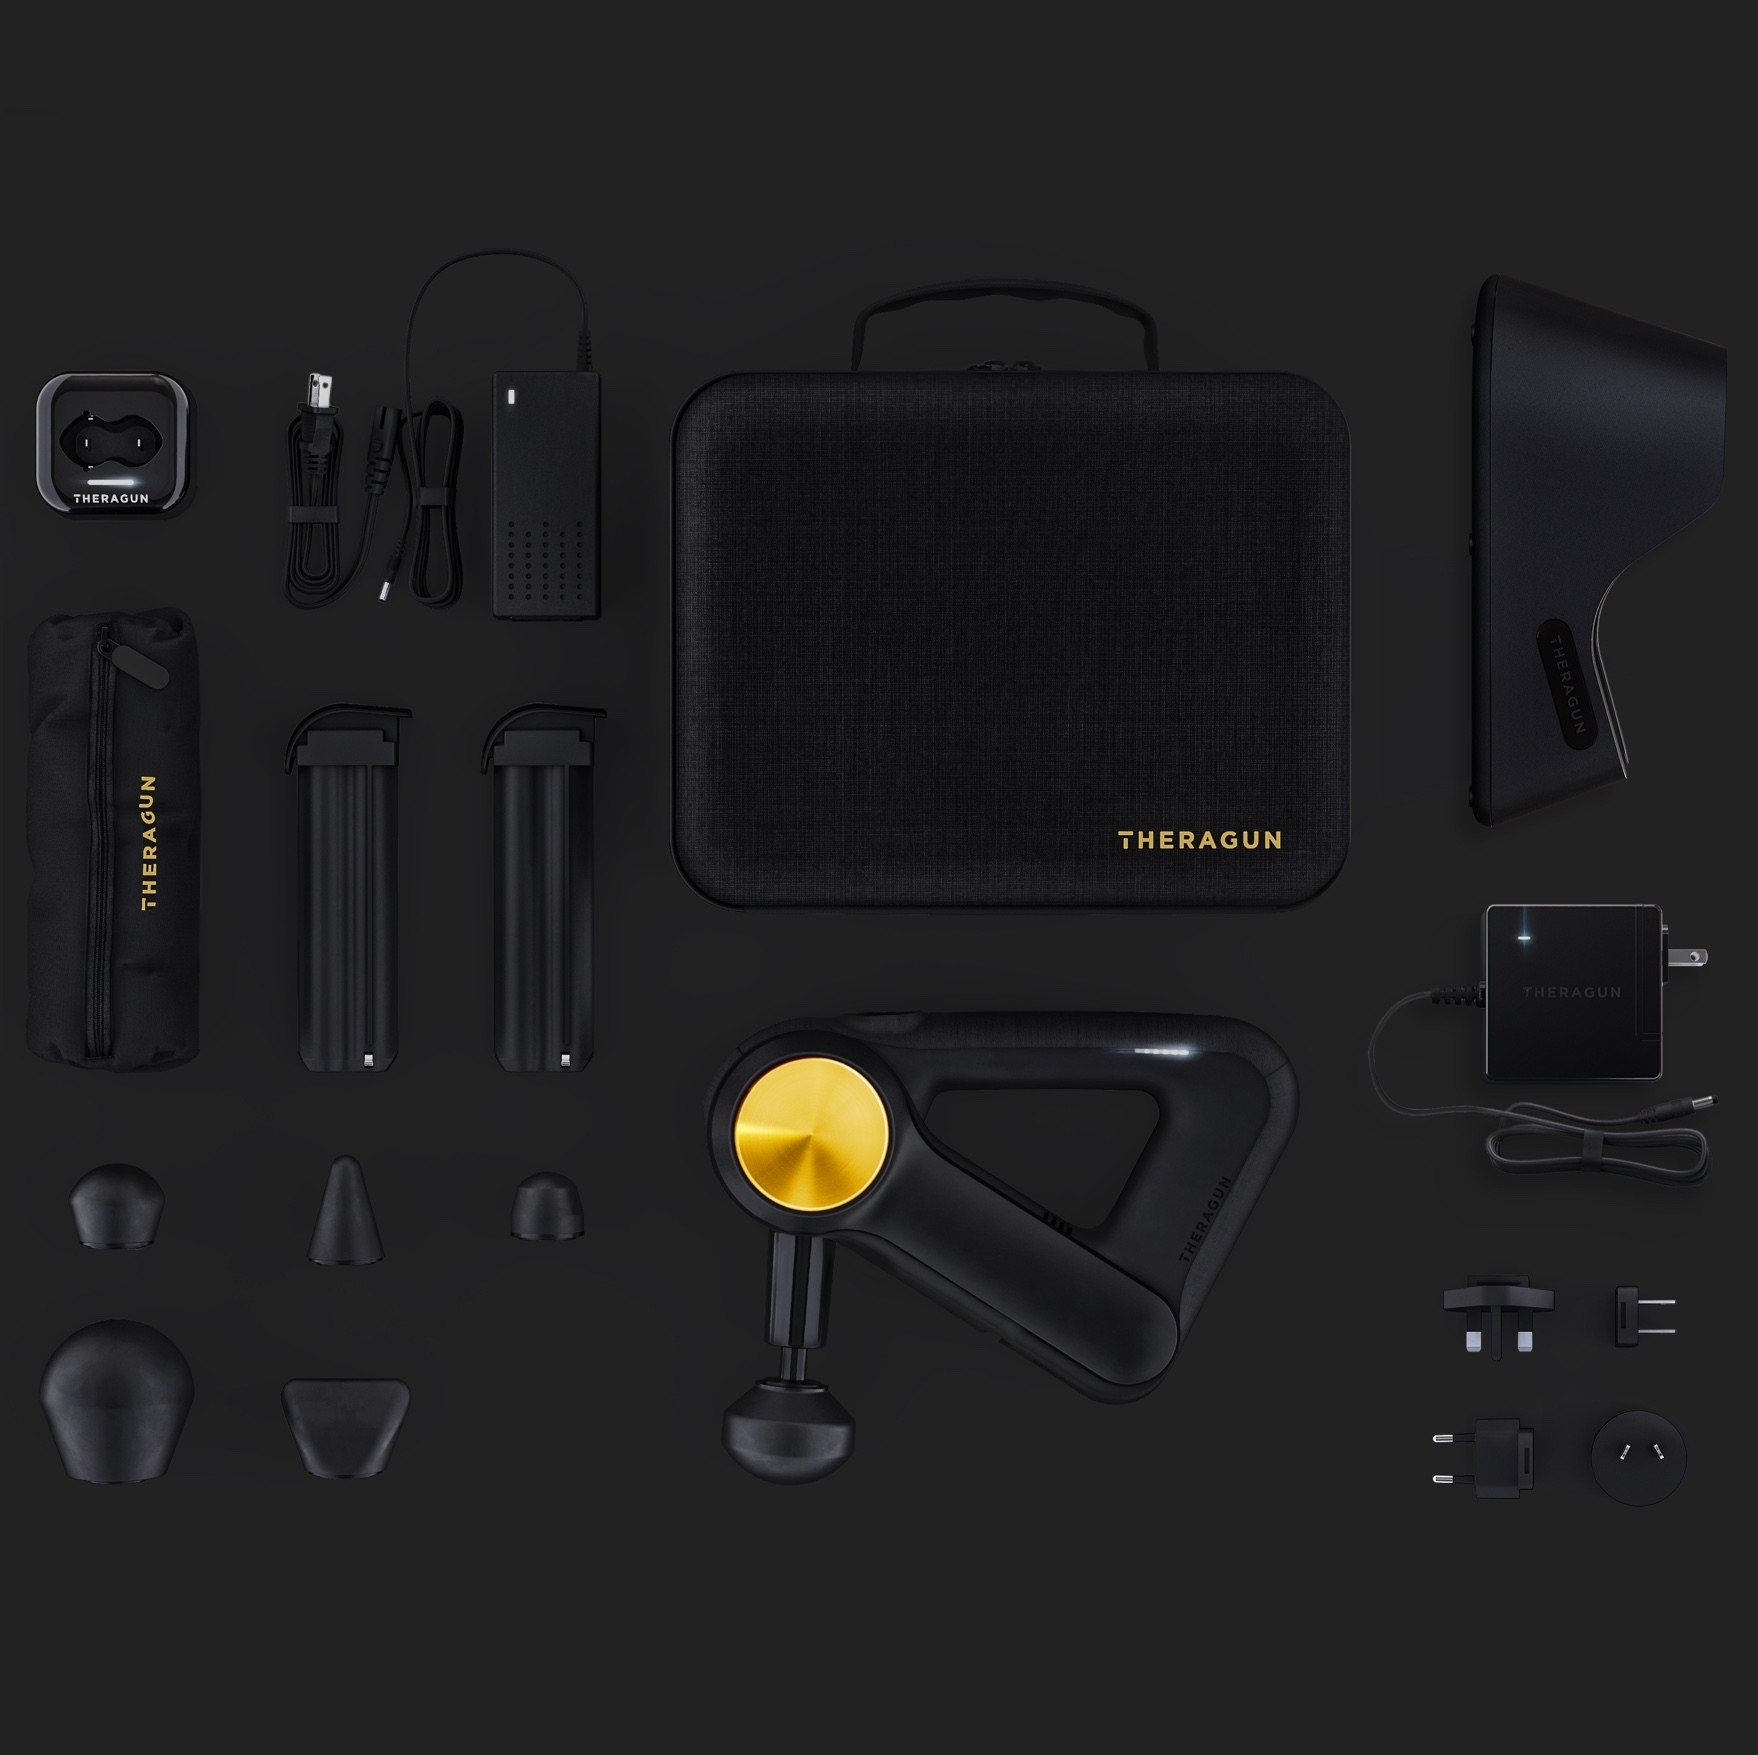 What's included with the Gold edition G3Pro